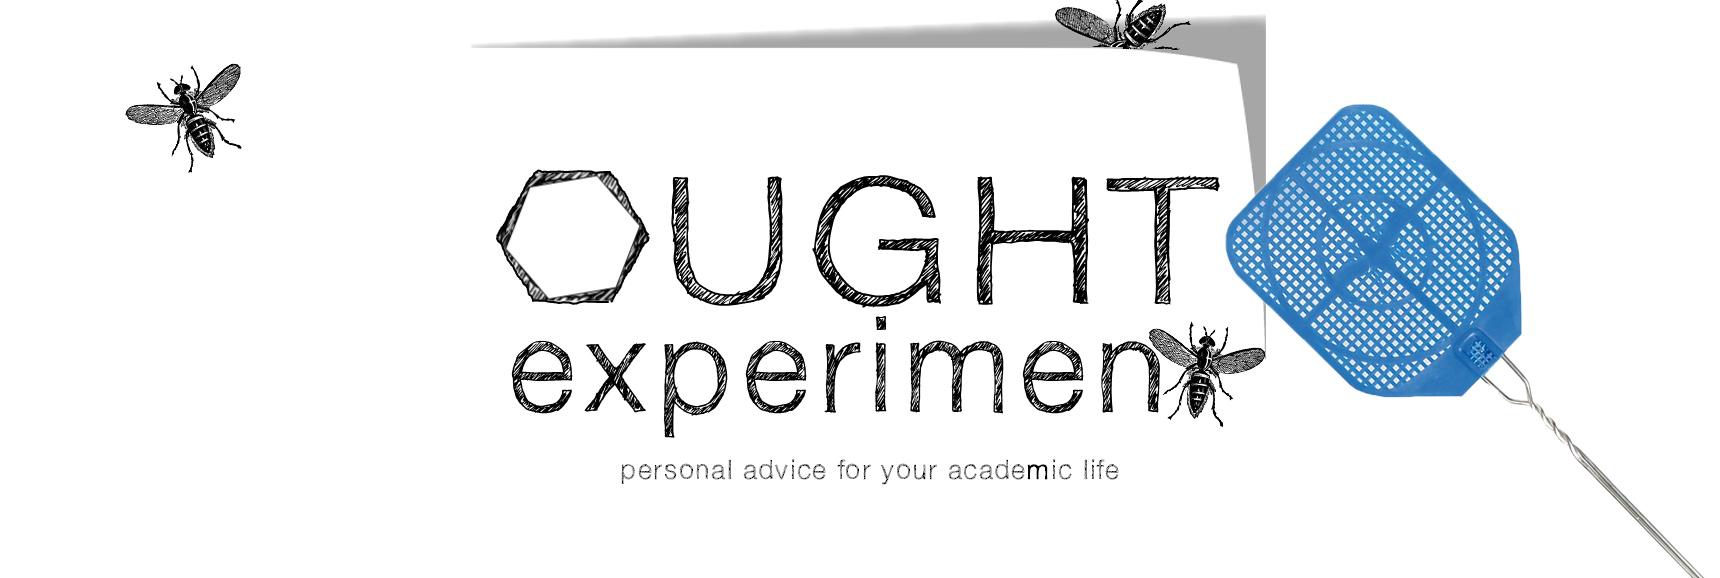 ought experiment gadfly banner